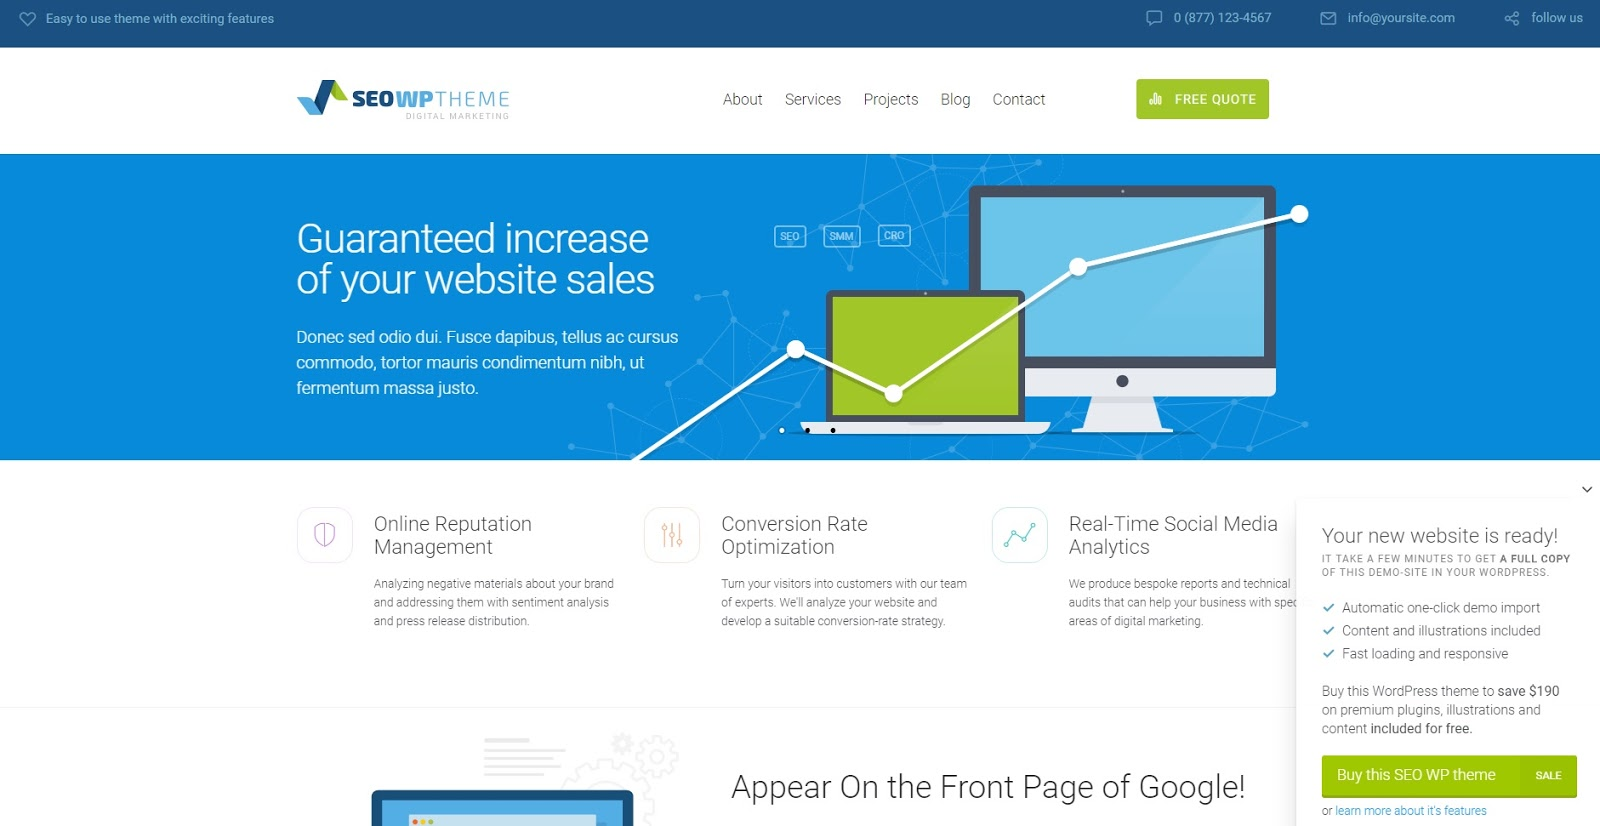 Download Free SEO WP v1.9.3 – Online Marketing, SEO, Social Media Agency